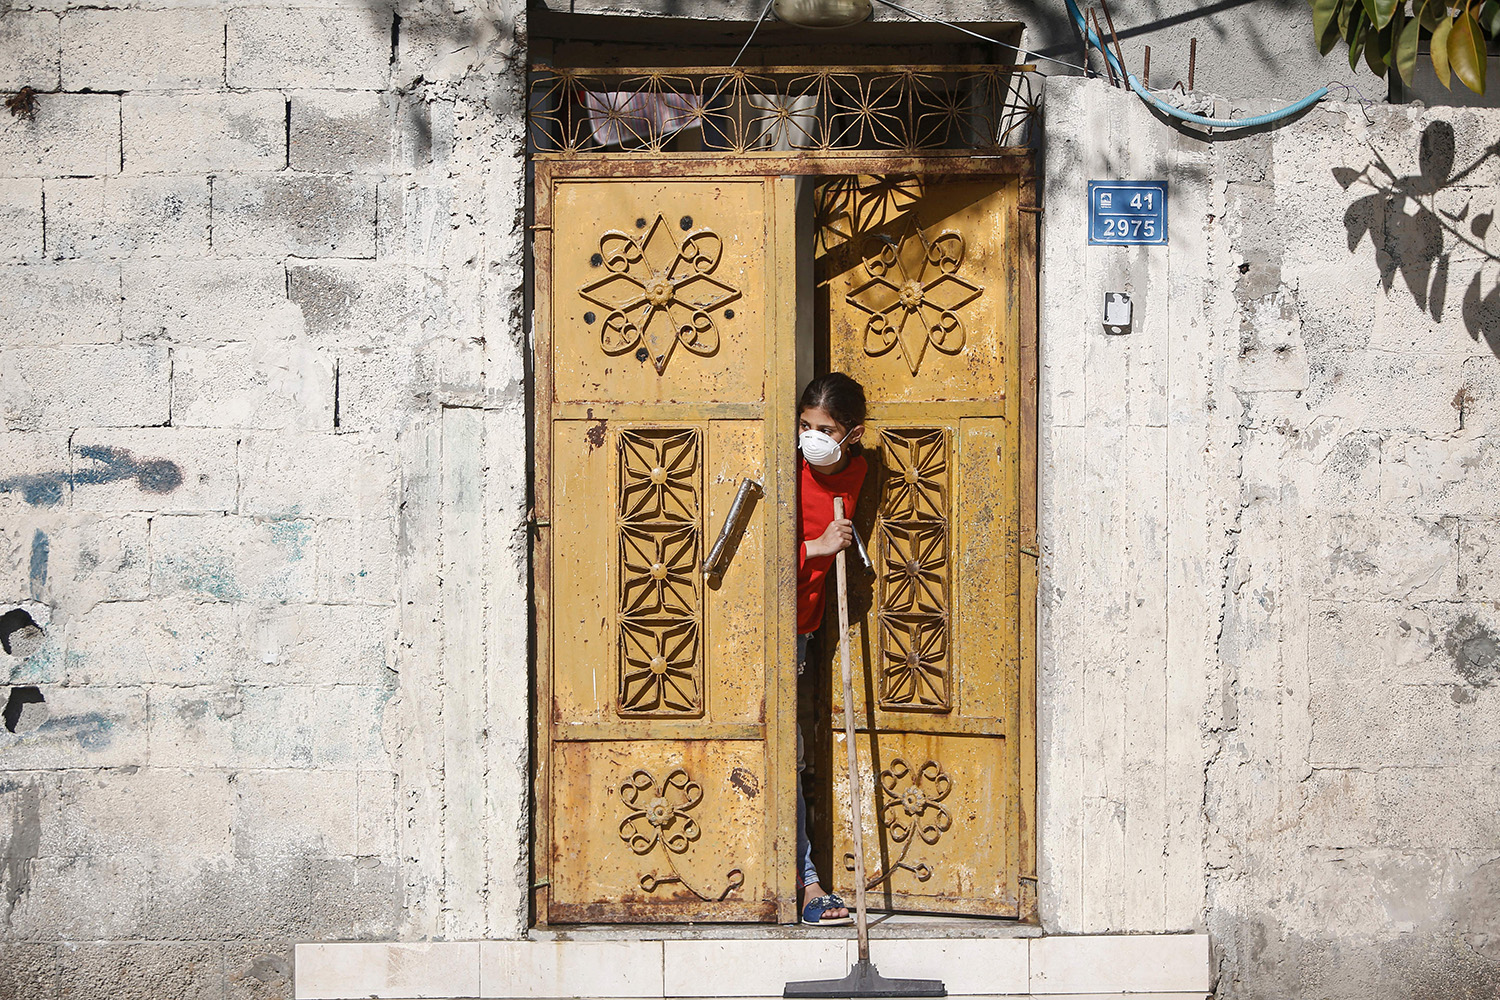 A girl wearing a protective mask sweeps outside her home in Gaza City on March 22.